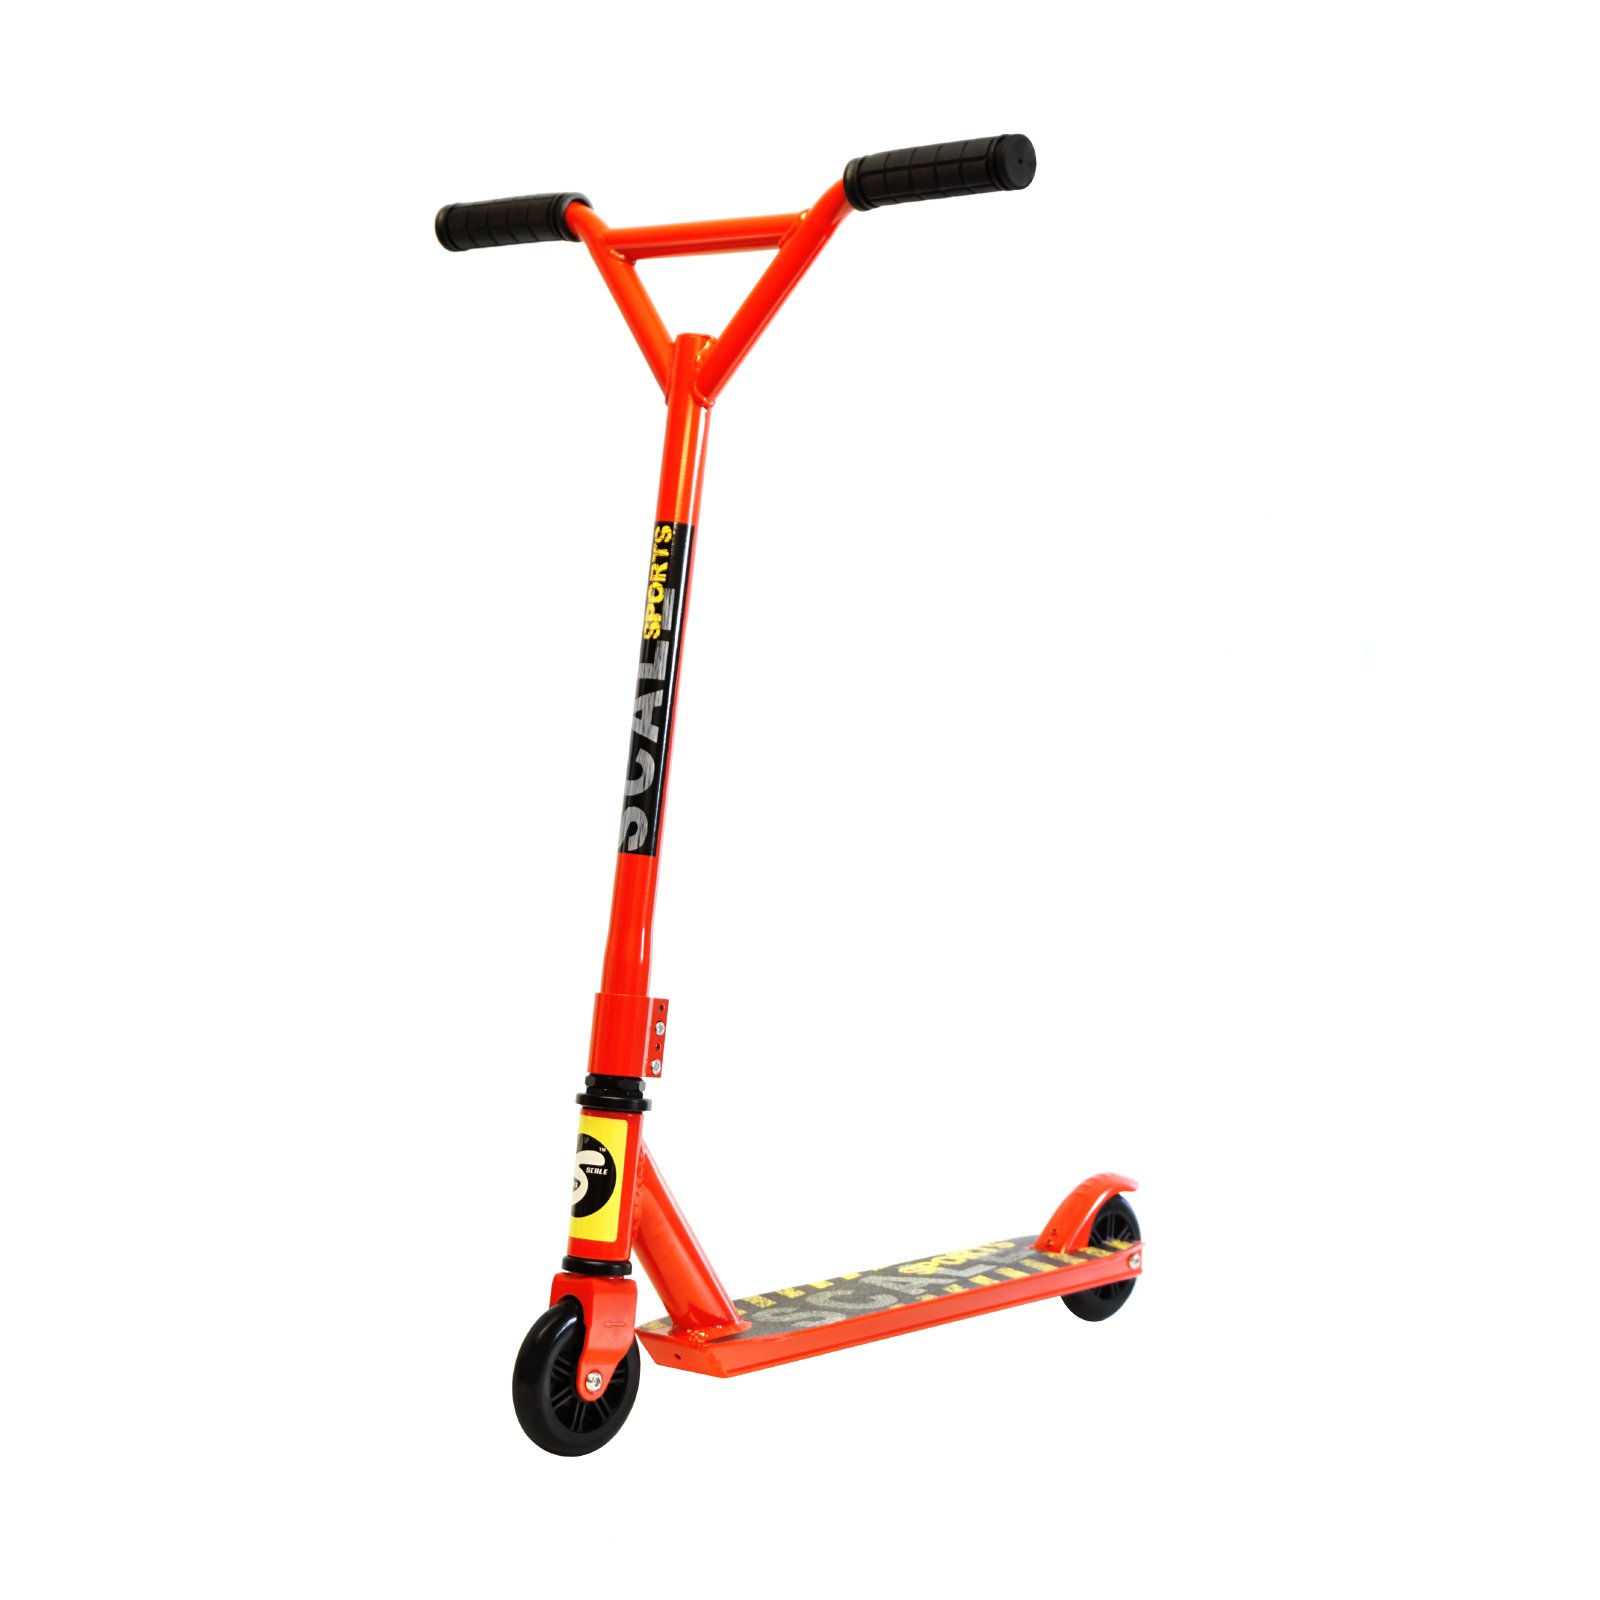 Freestyle Trick Stunt Scooter for Beginners Amateurs, Red